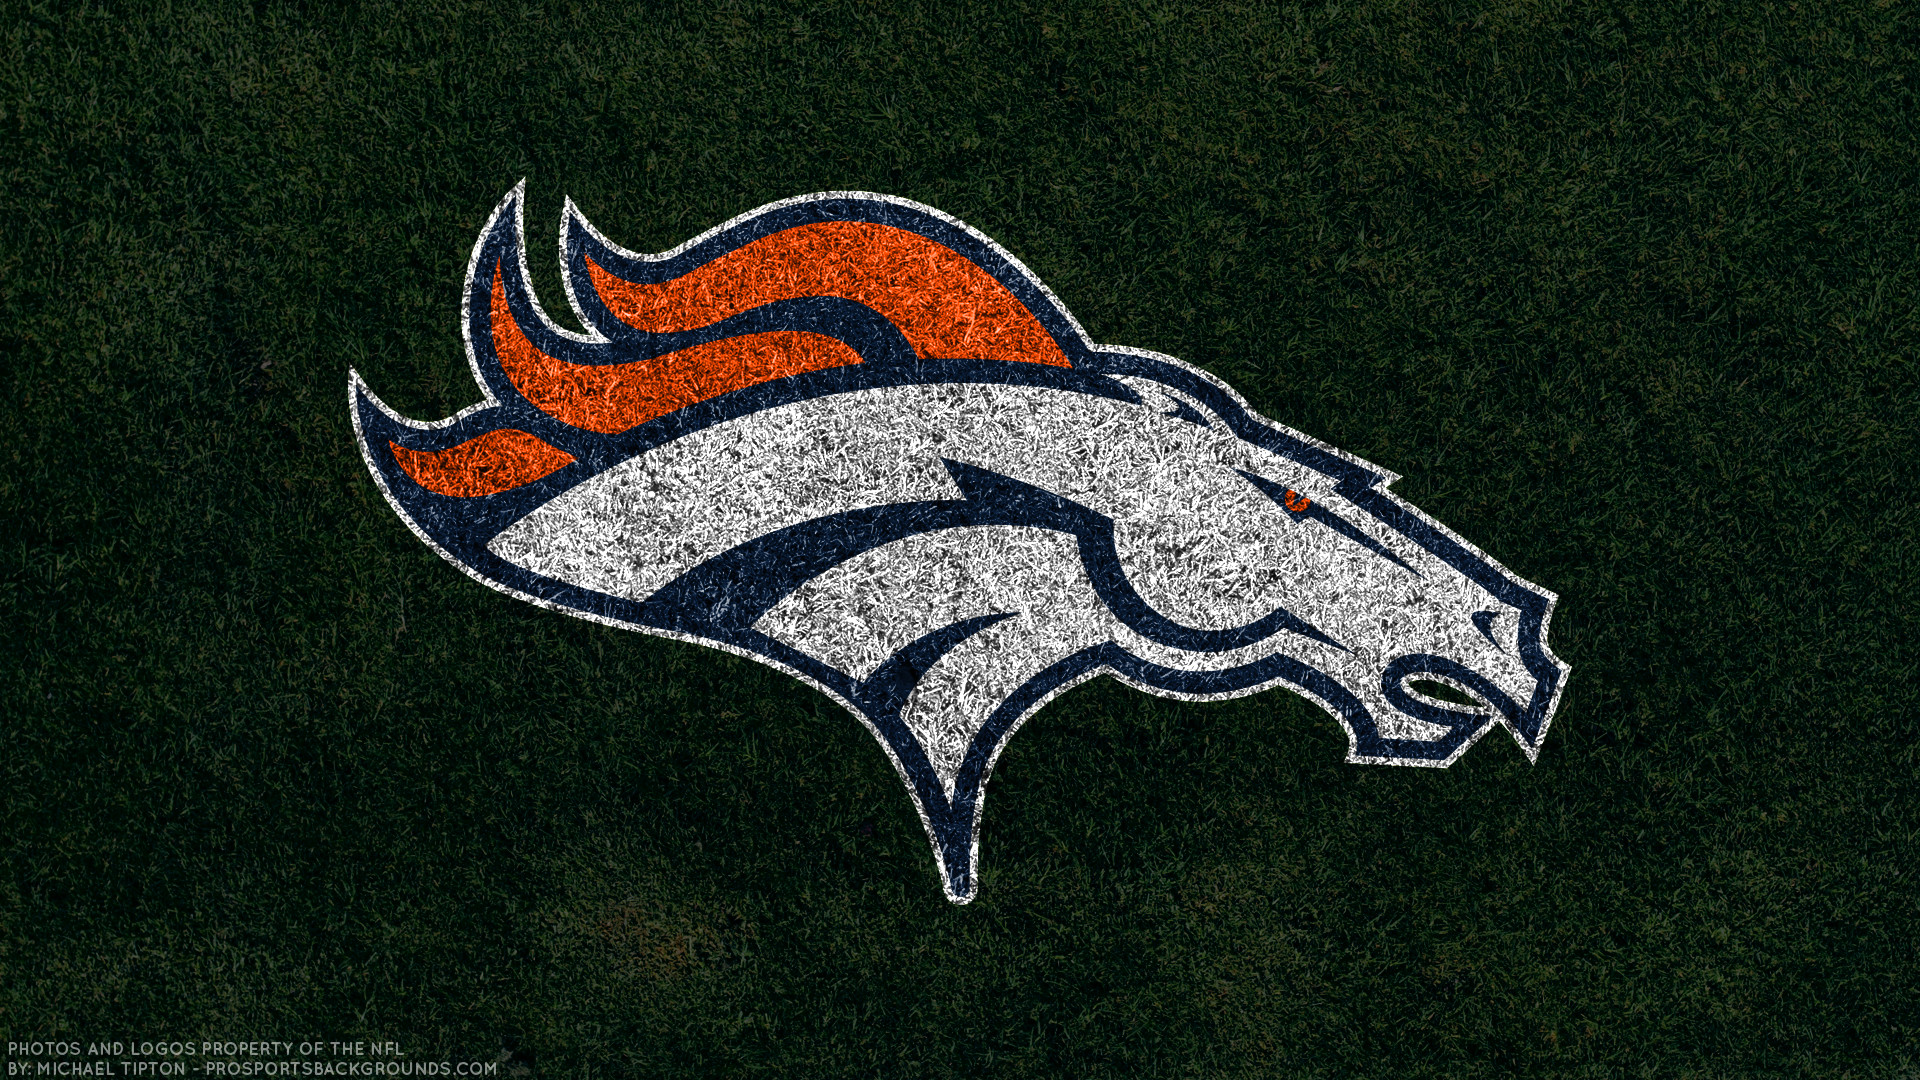 … Denver Broncos 2017 turf football logo wallpaper free pc desktop  computer